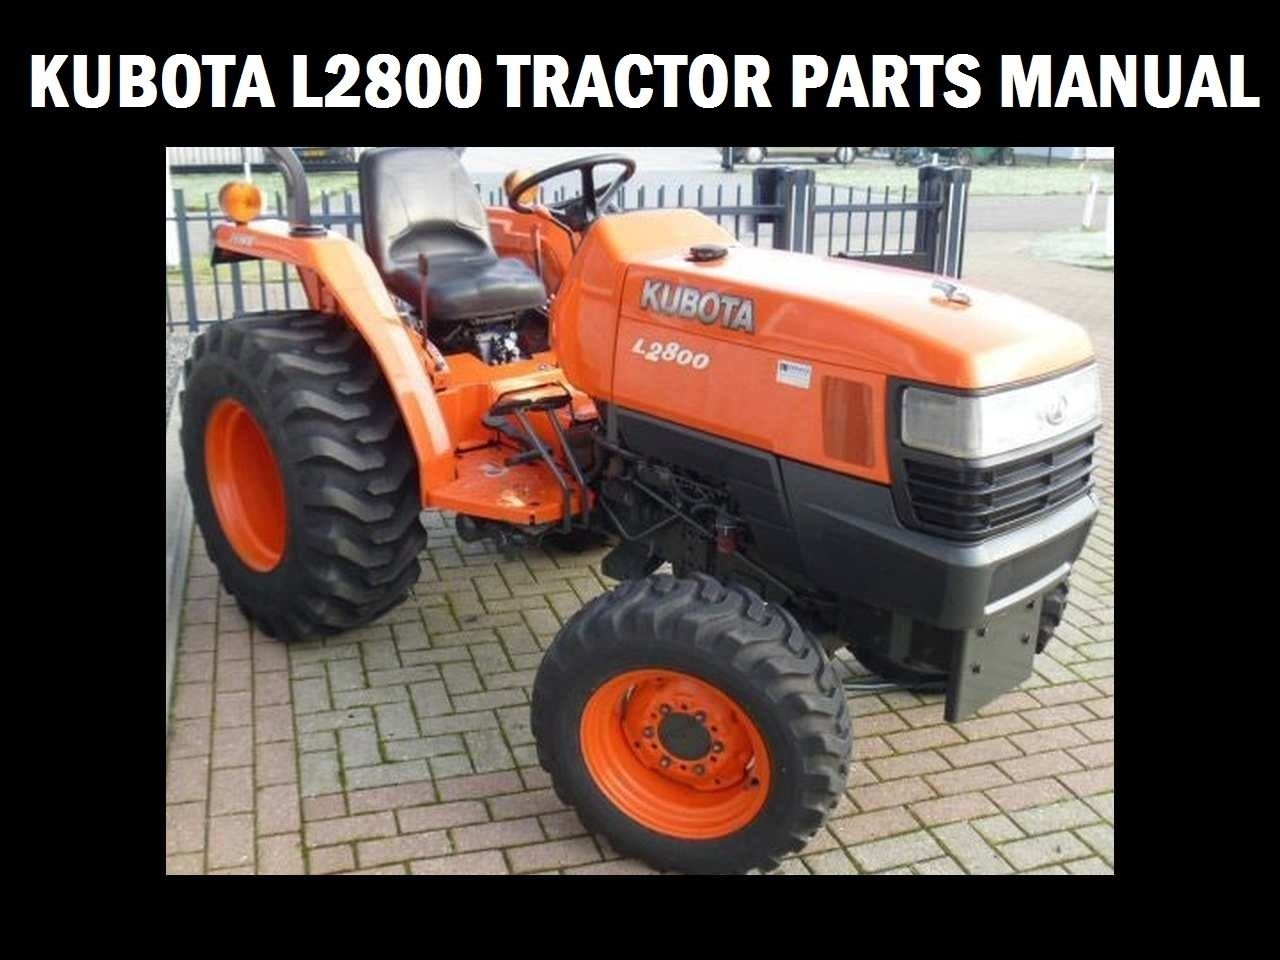 Kubota L2800 Tractor Parts Manuals 425pgs For L 2800 Dt Hst Service Amp Repair